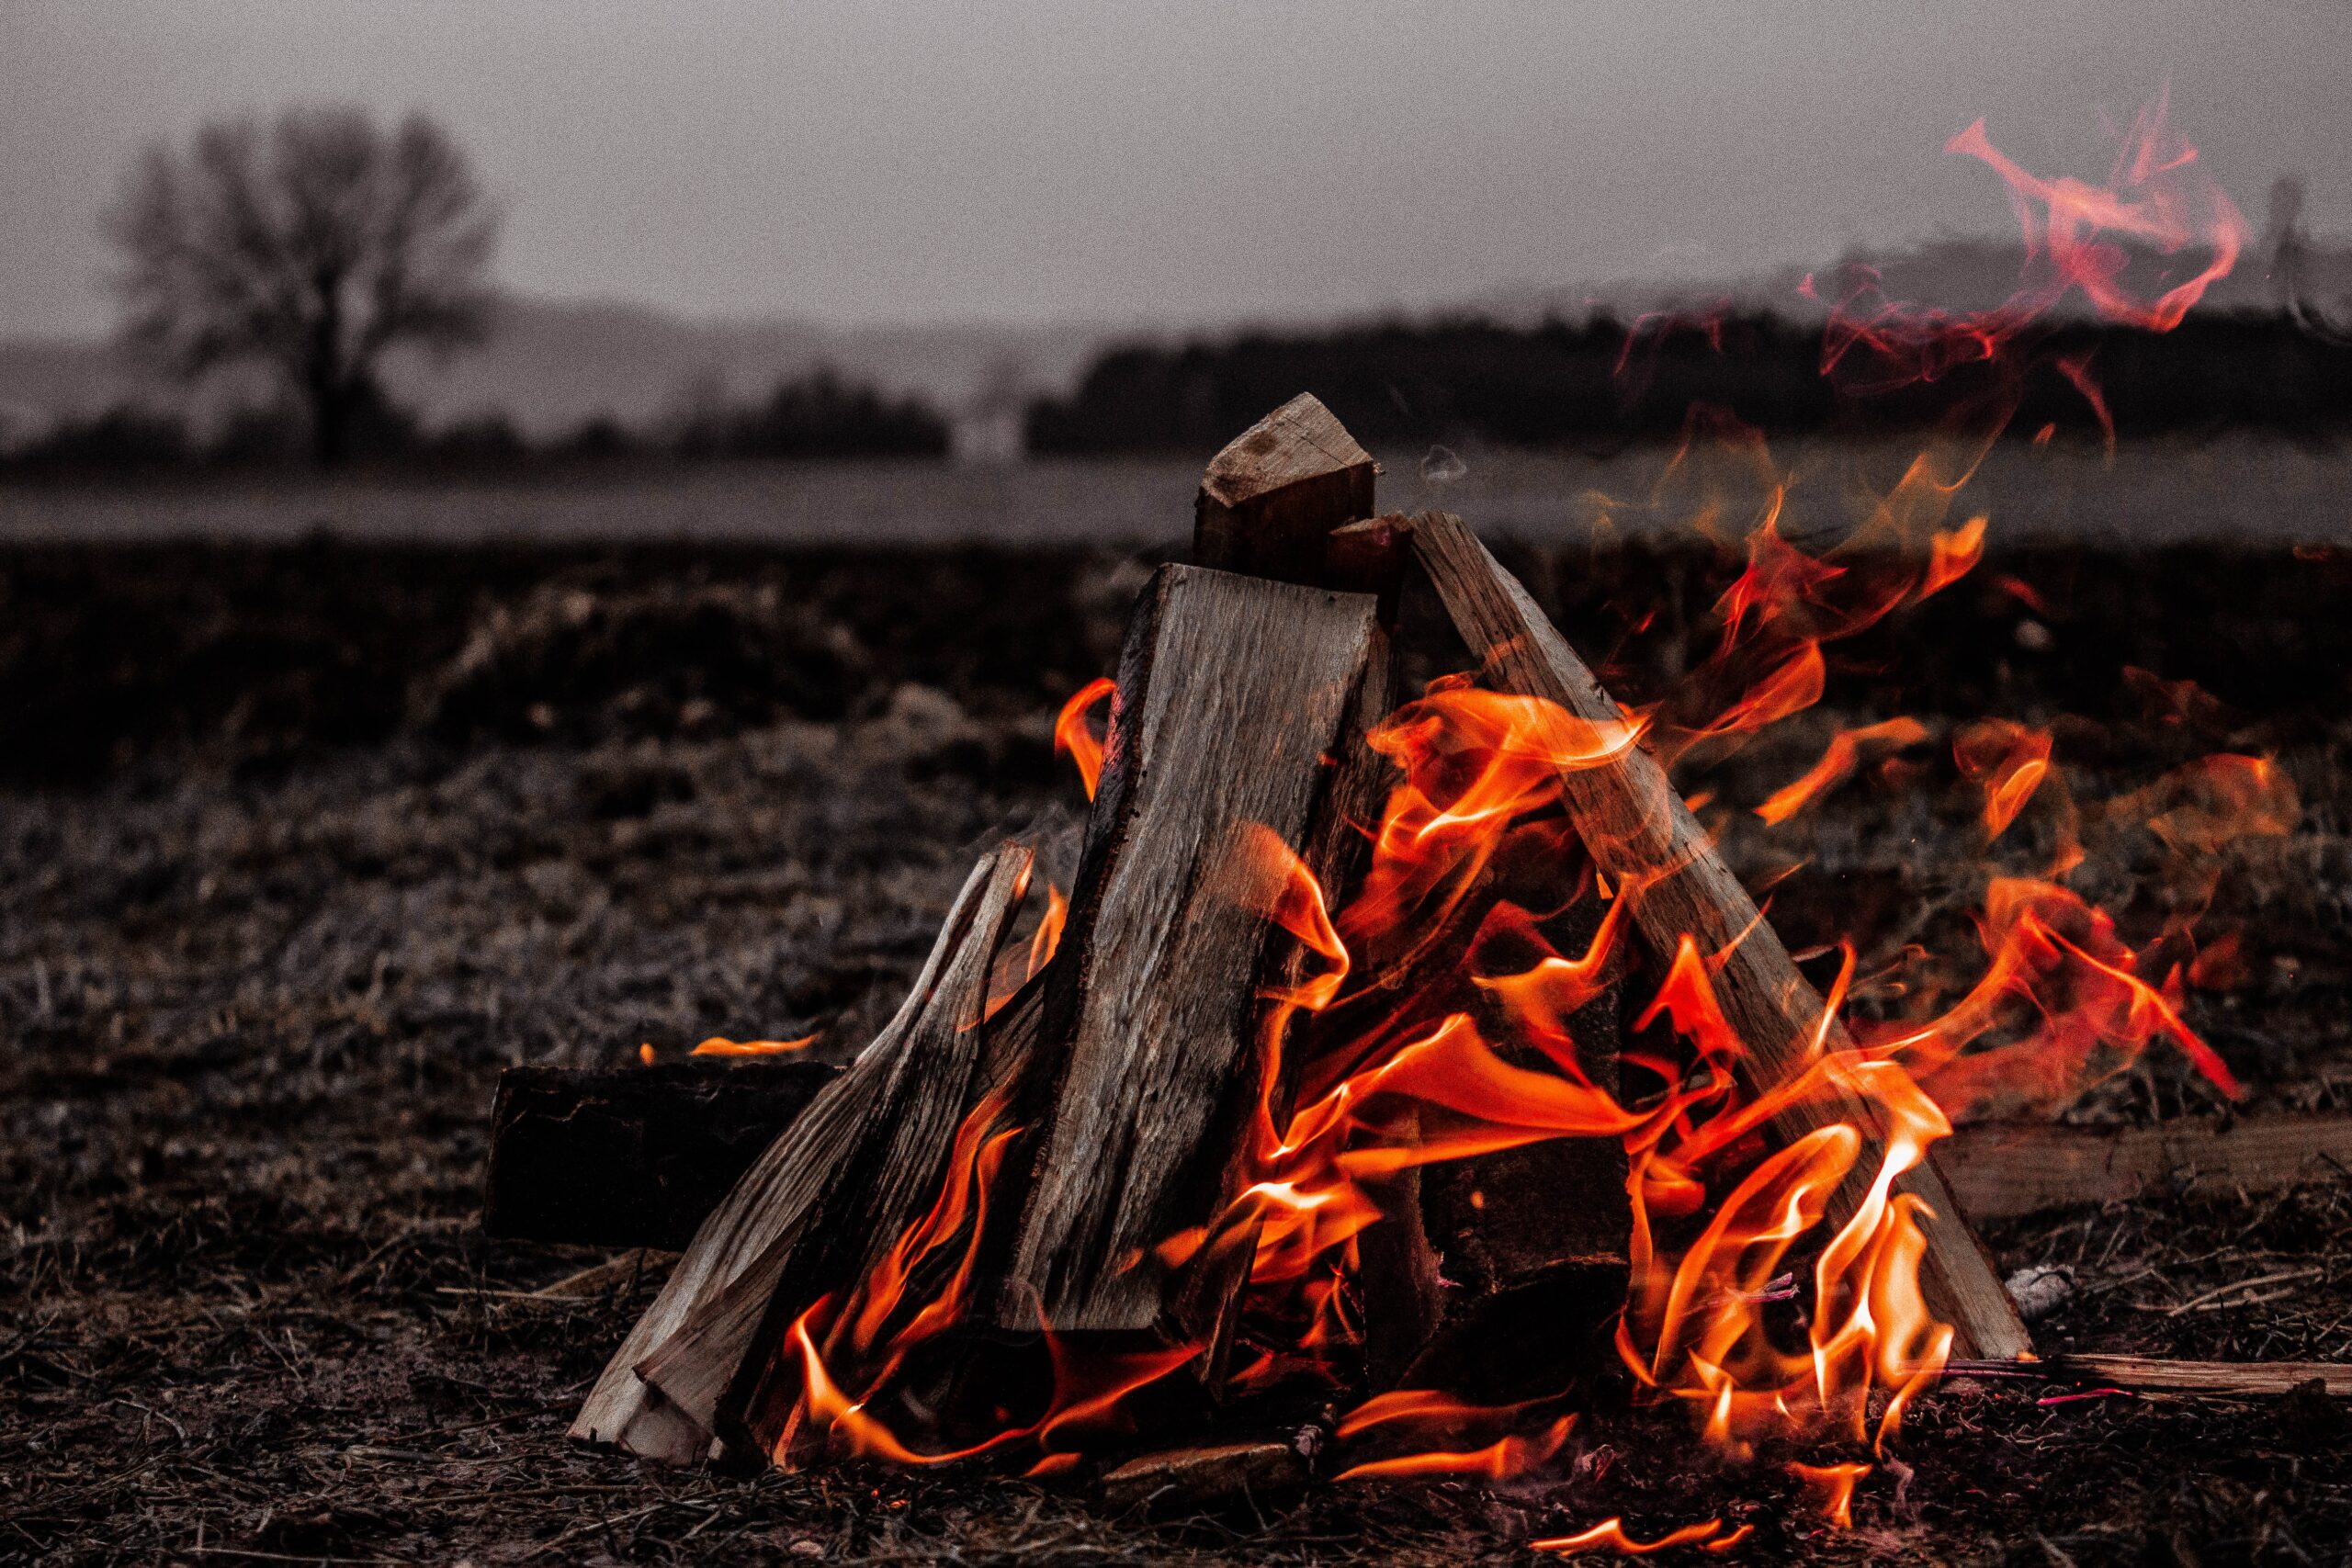 How to build a fire with wet wood